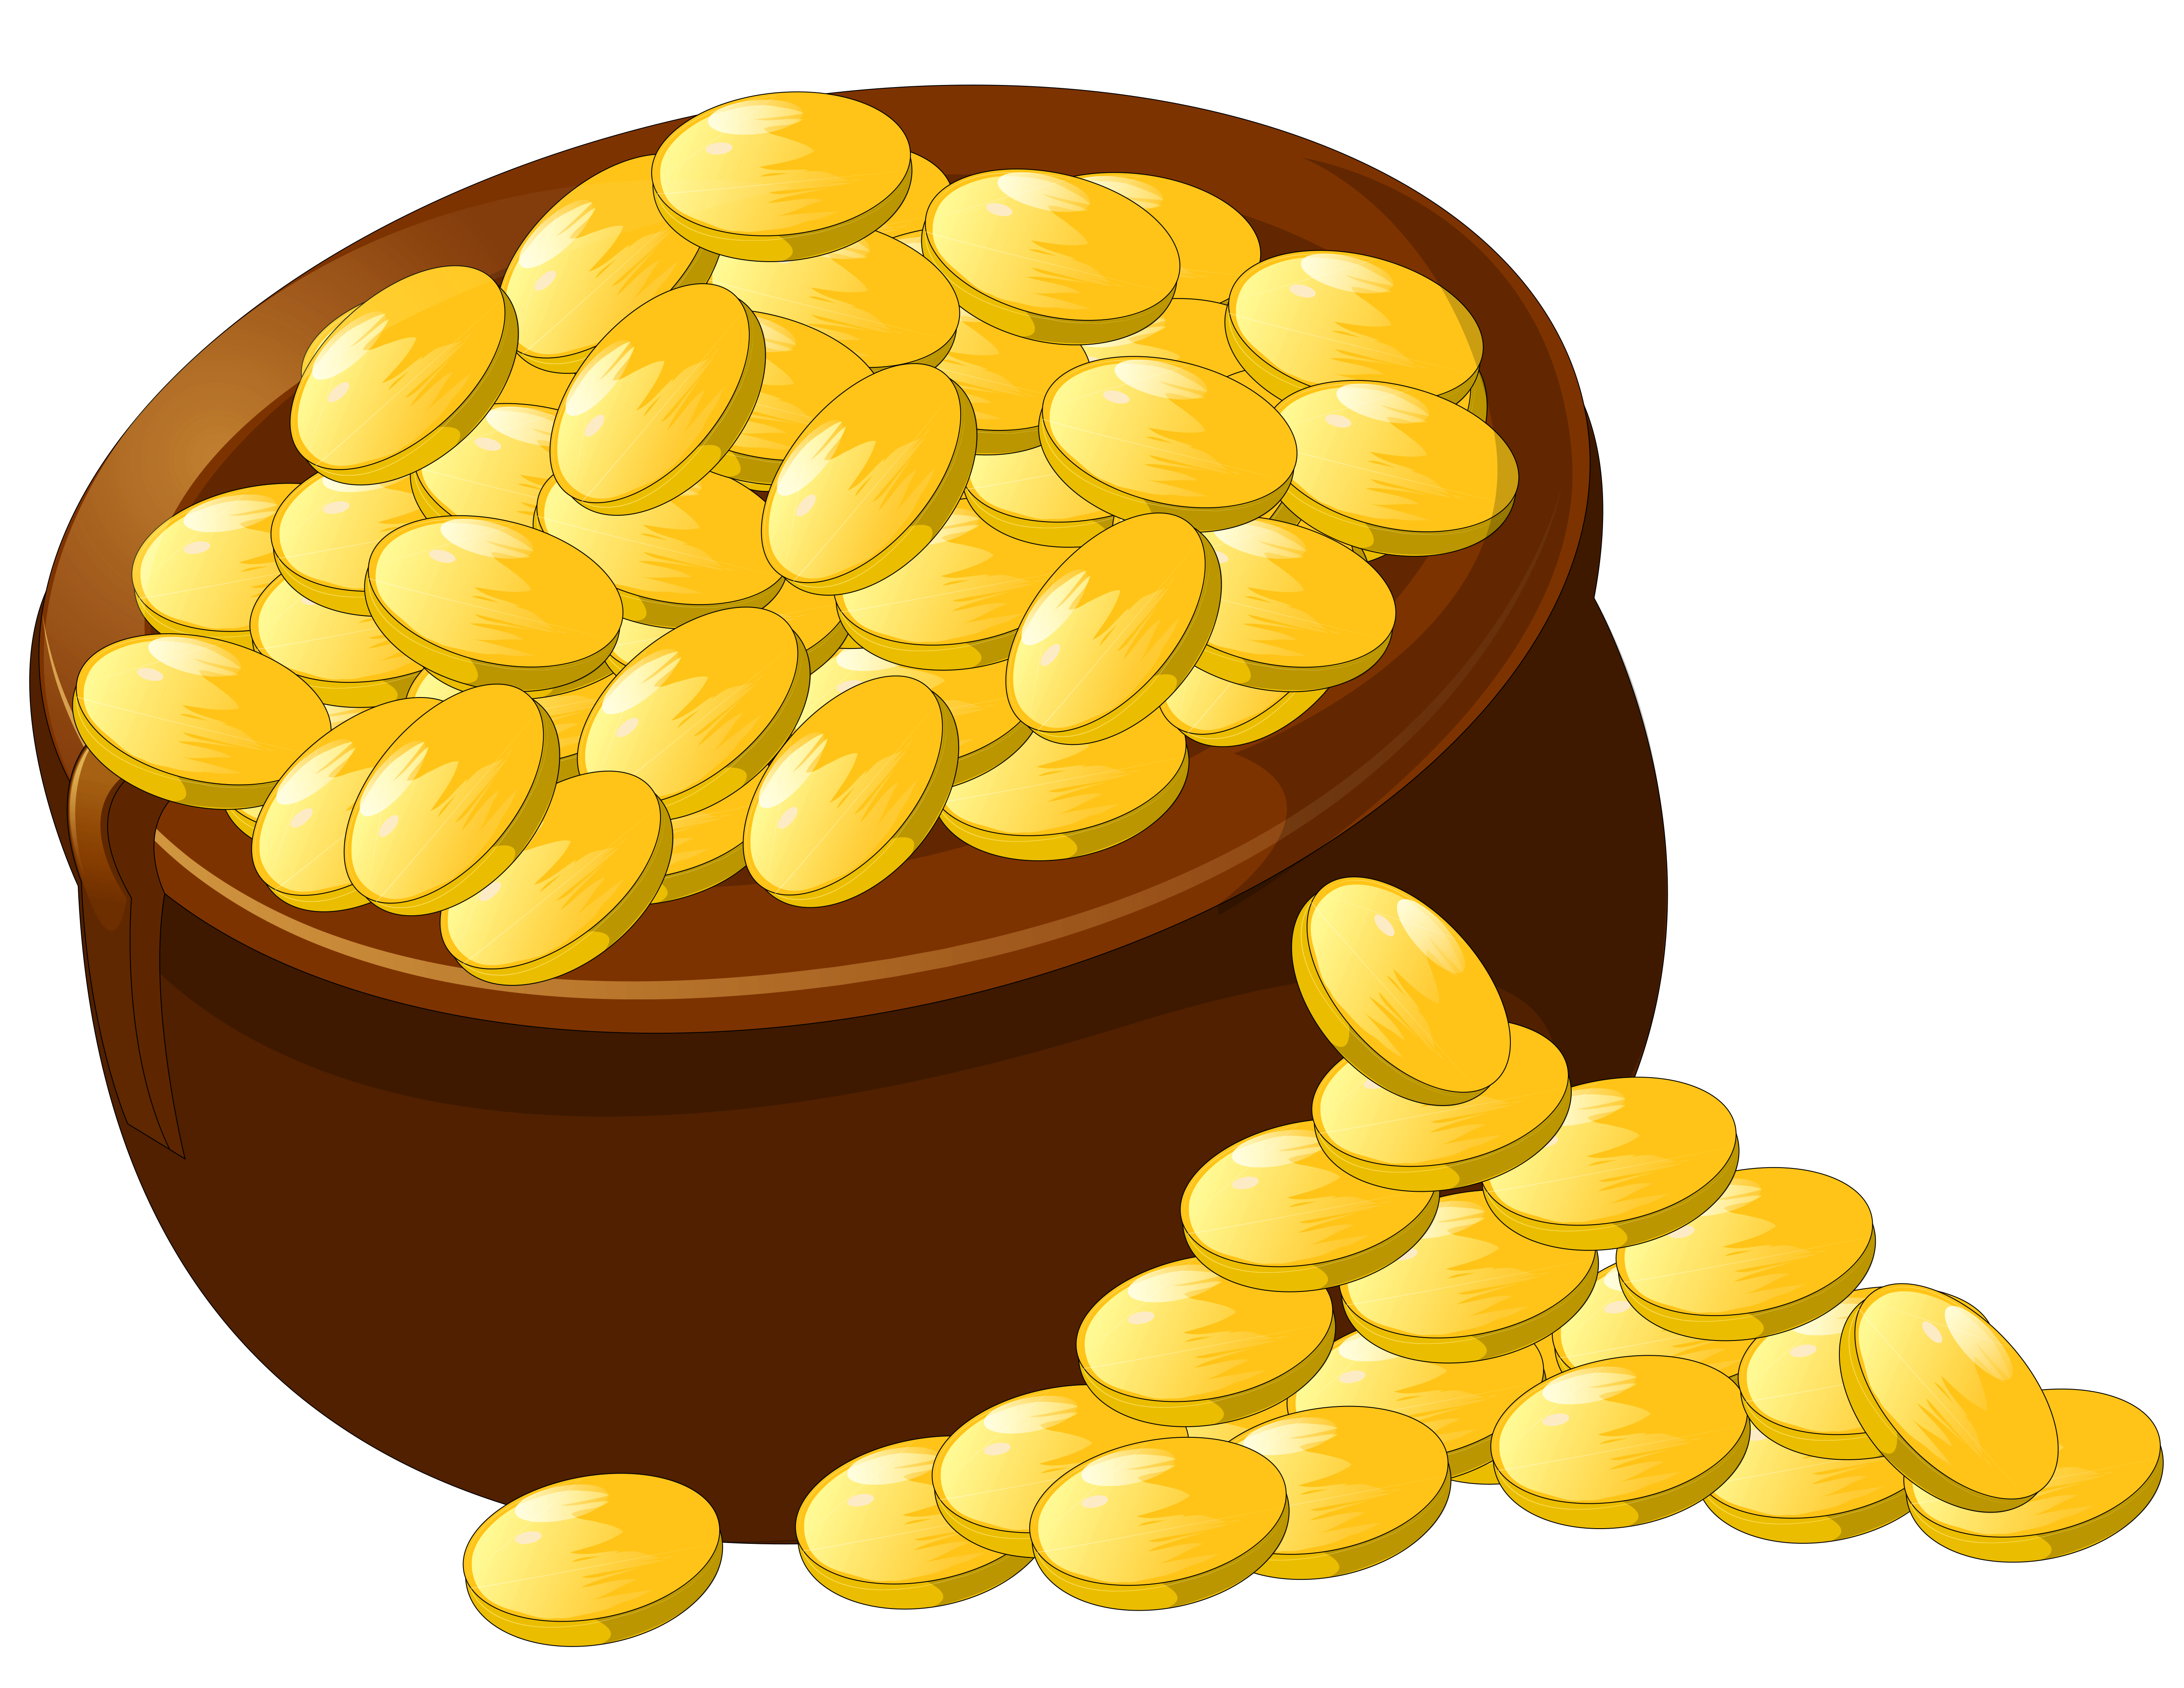 Transparent Pot of Gold PNG Picture Clipart.